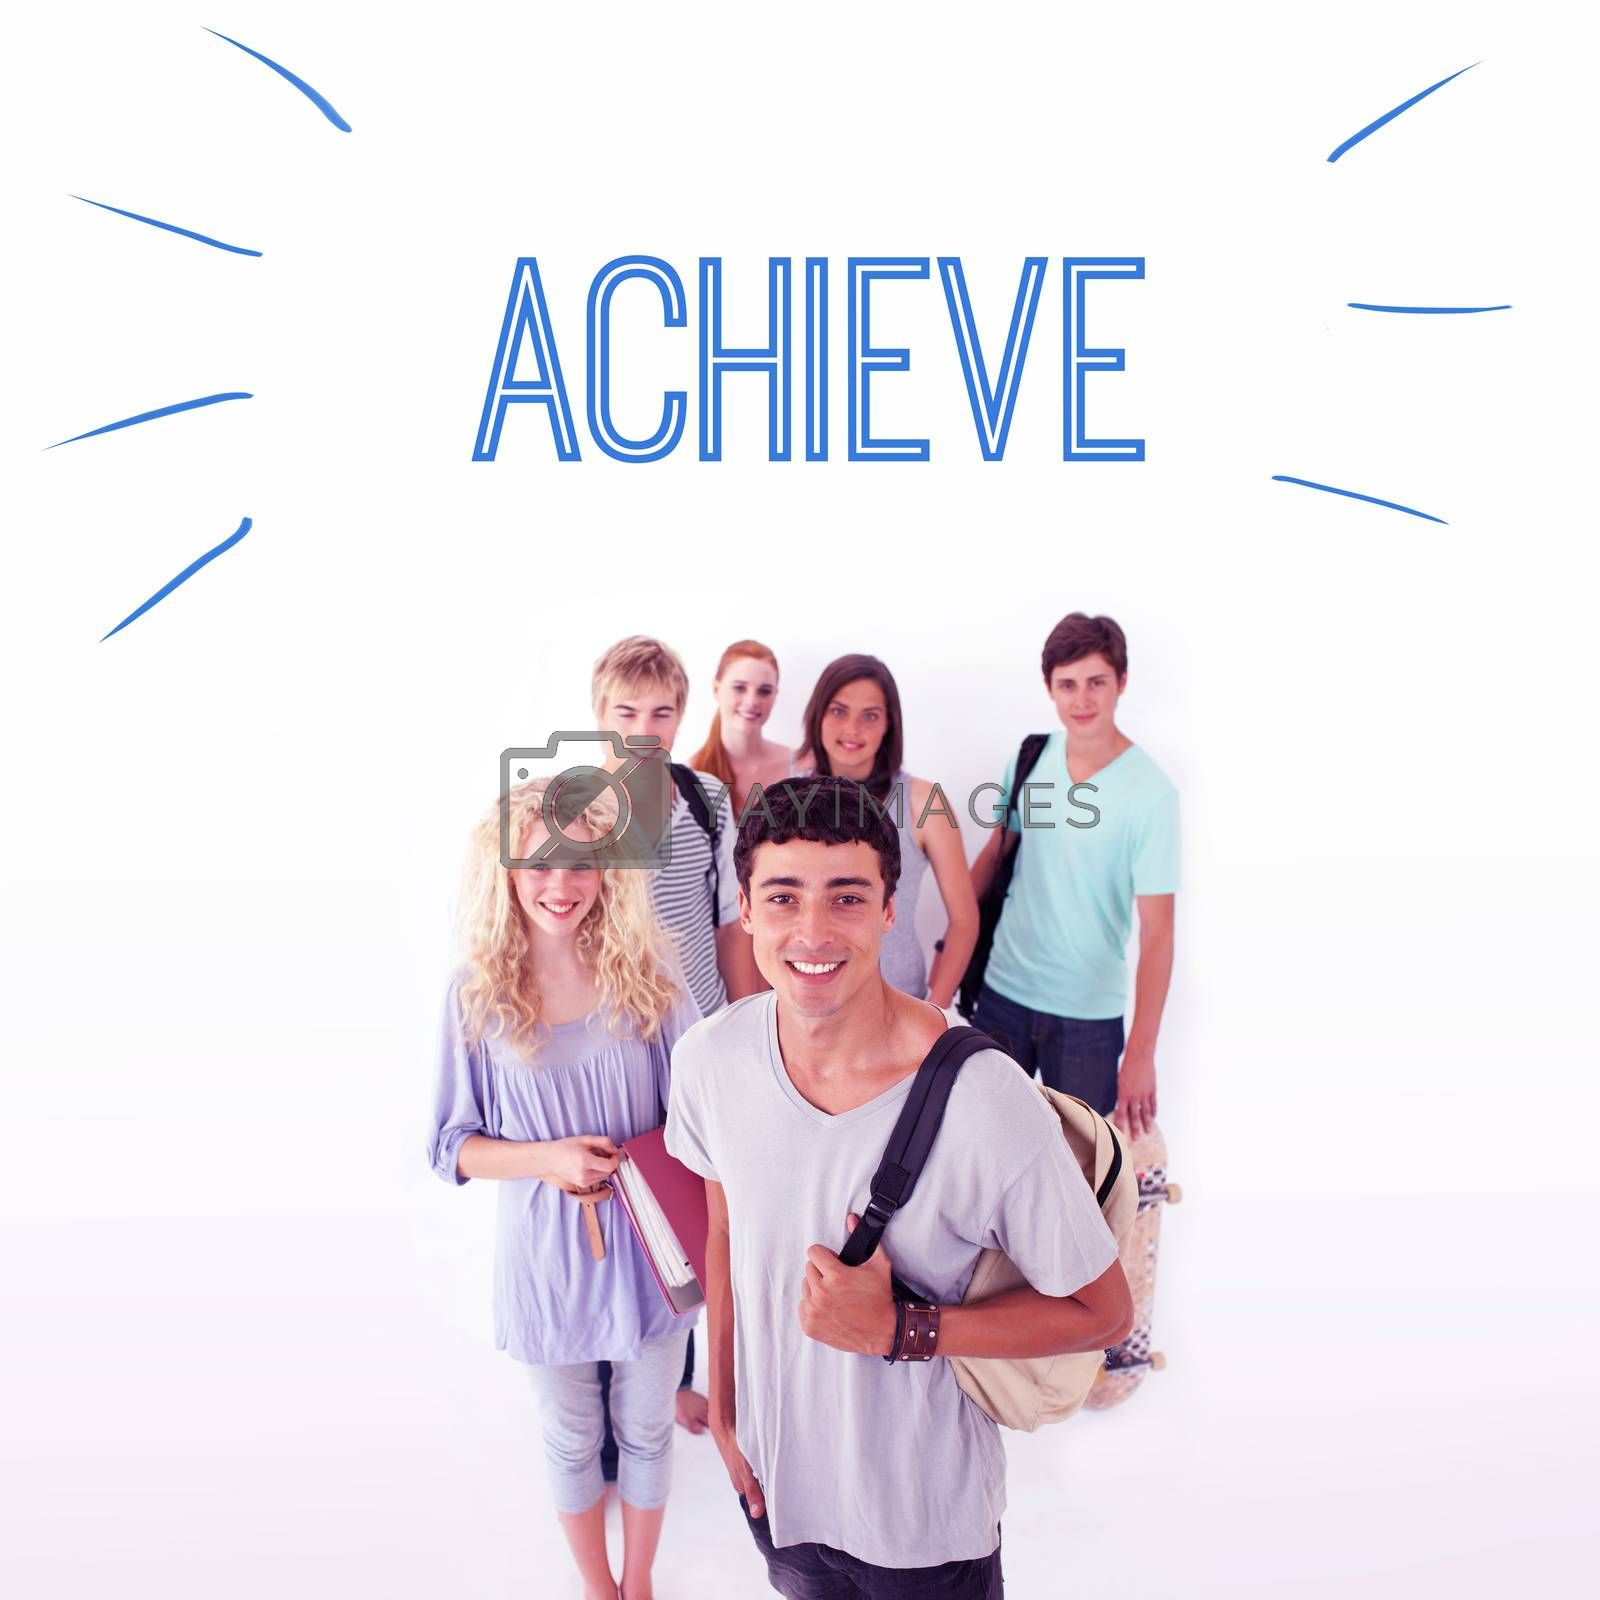 Achieve against smiling students by Wavebreakmedia